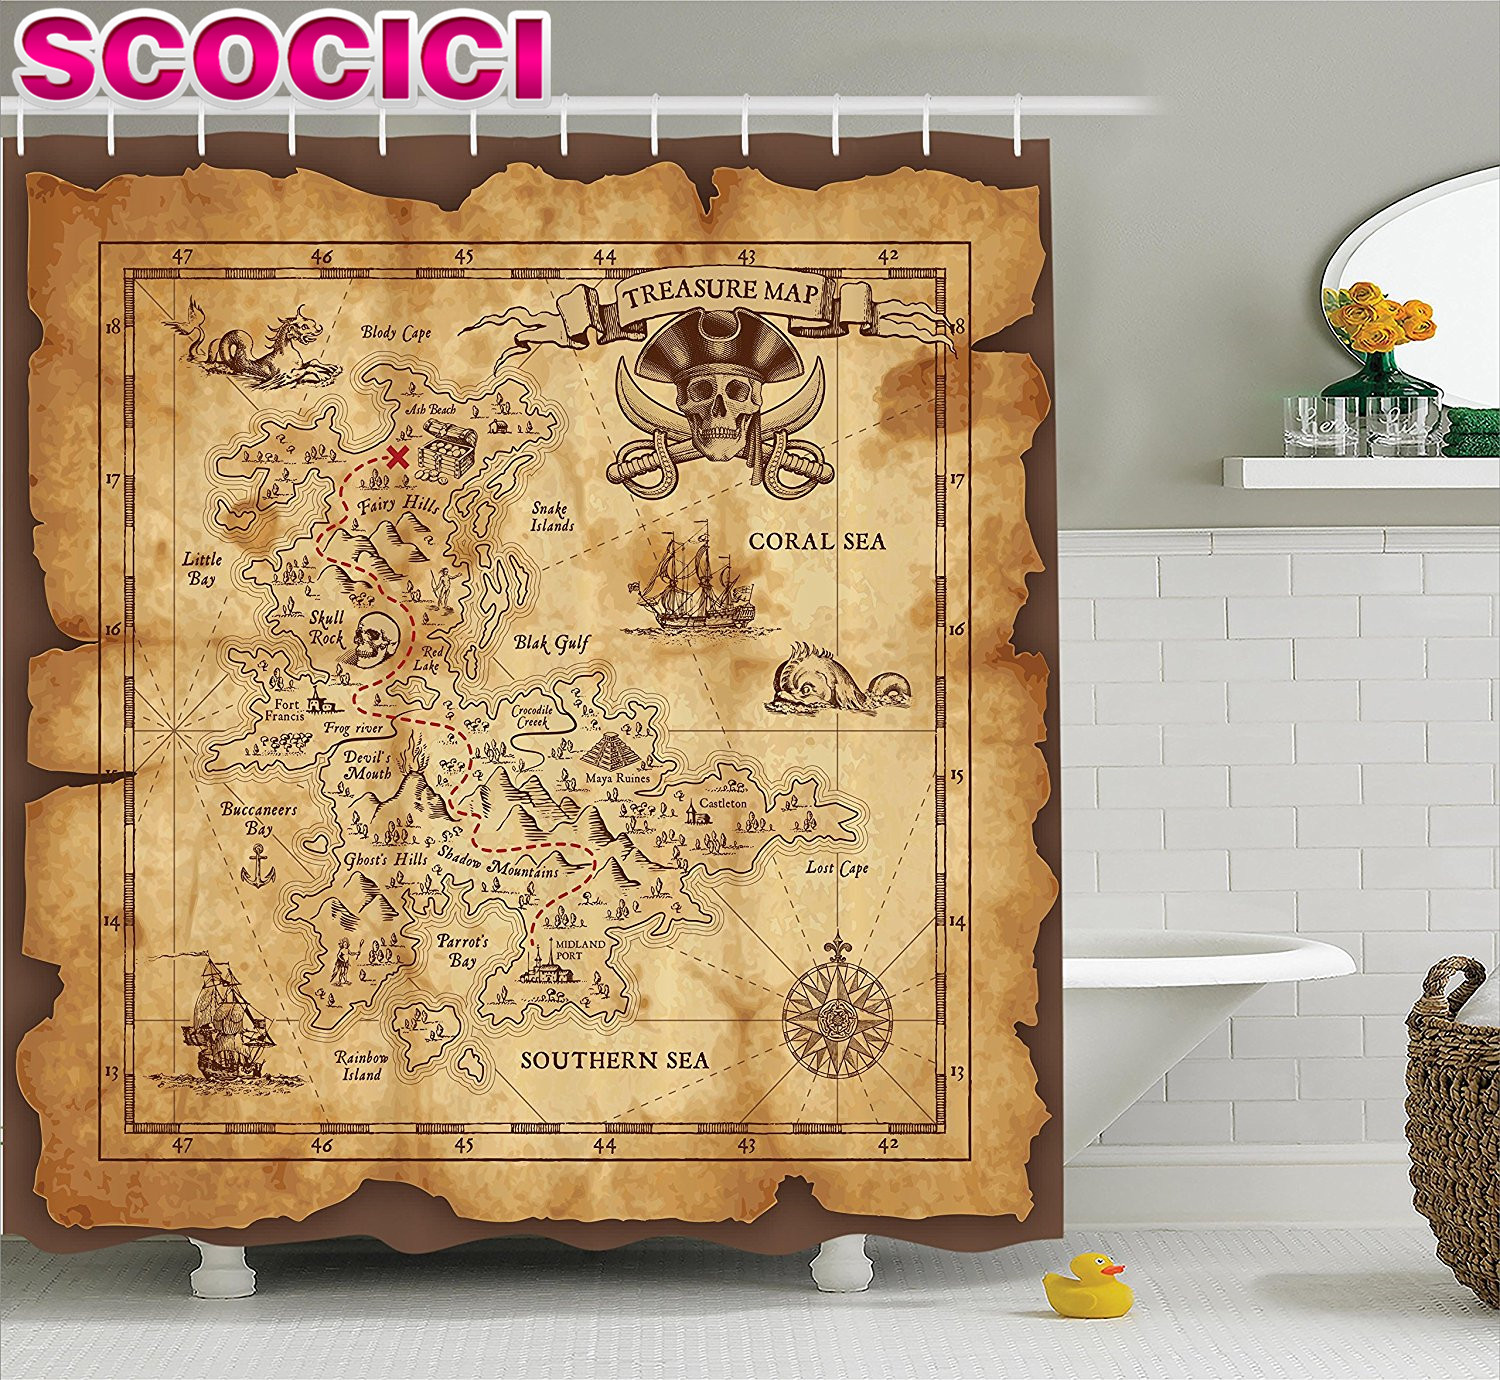 Pirate bathroom decor - Island Map Decor Shower Curtain Set Super Detailed Treasure Map Grungy Rustic Pirates Gold Secret Sea History Theme Bathroom Acc